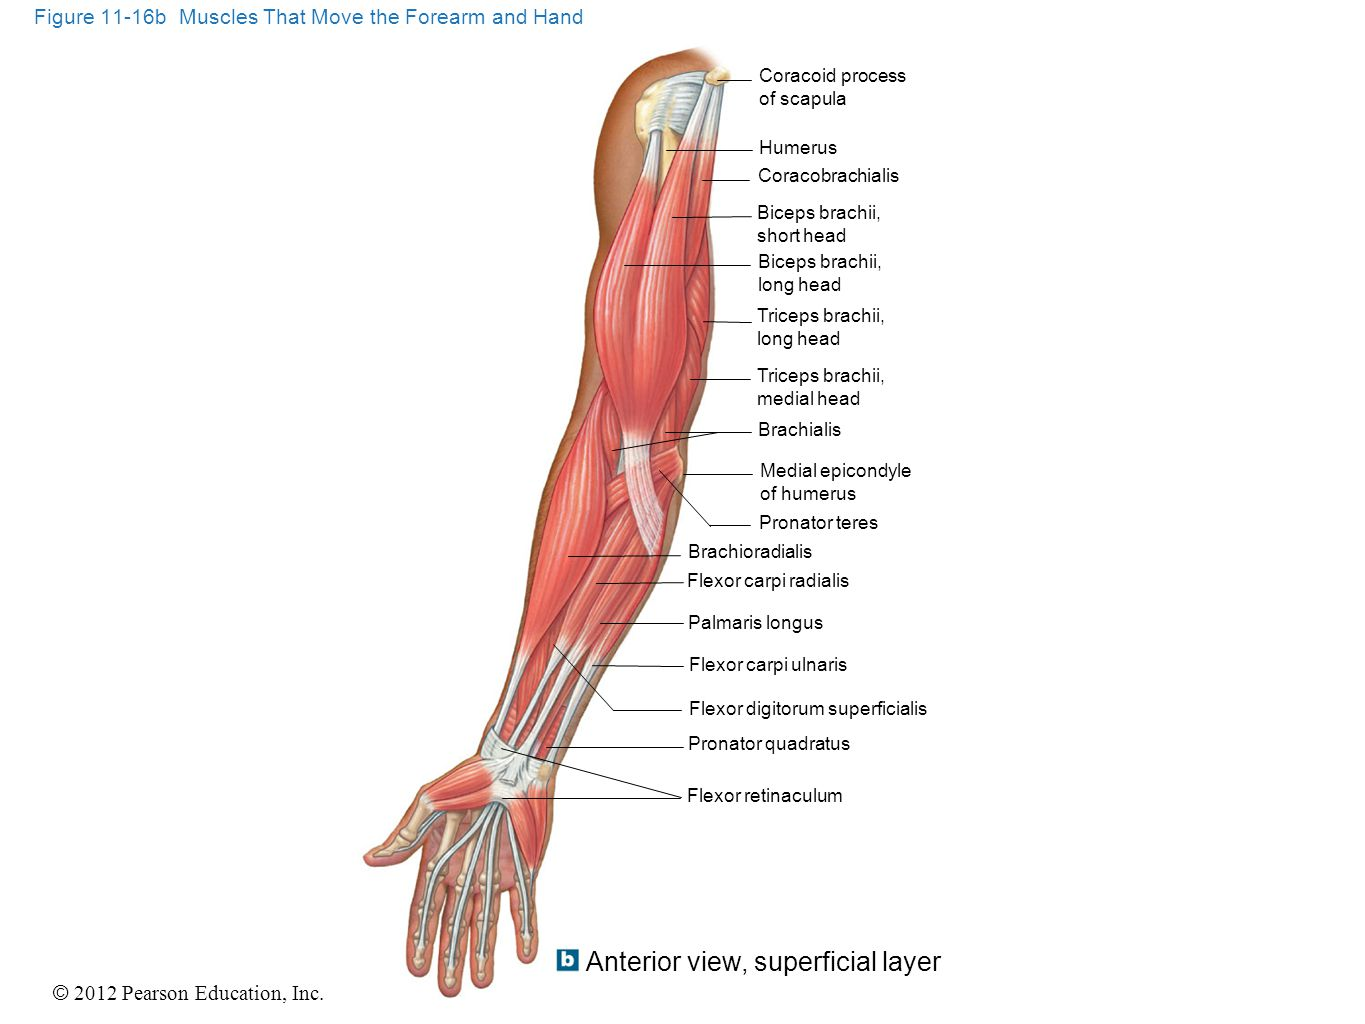 © 2012 Pearson Education, Inc. Figure 11-16b Muscles That Move the Forearm and Hand Coracoid process of scapula Humerus Coracobrachialis Biceps brachi